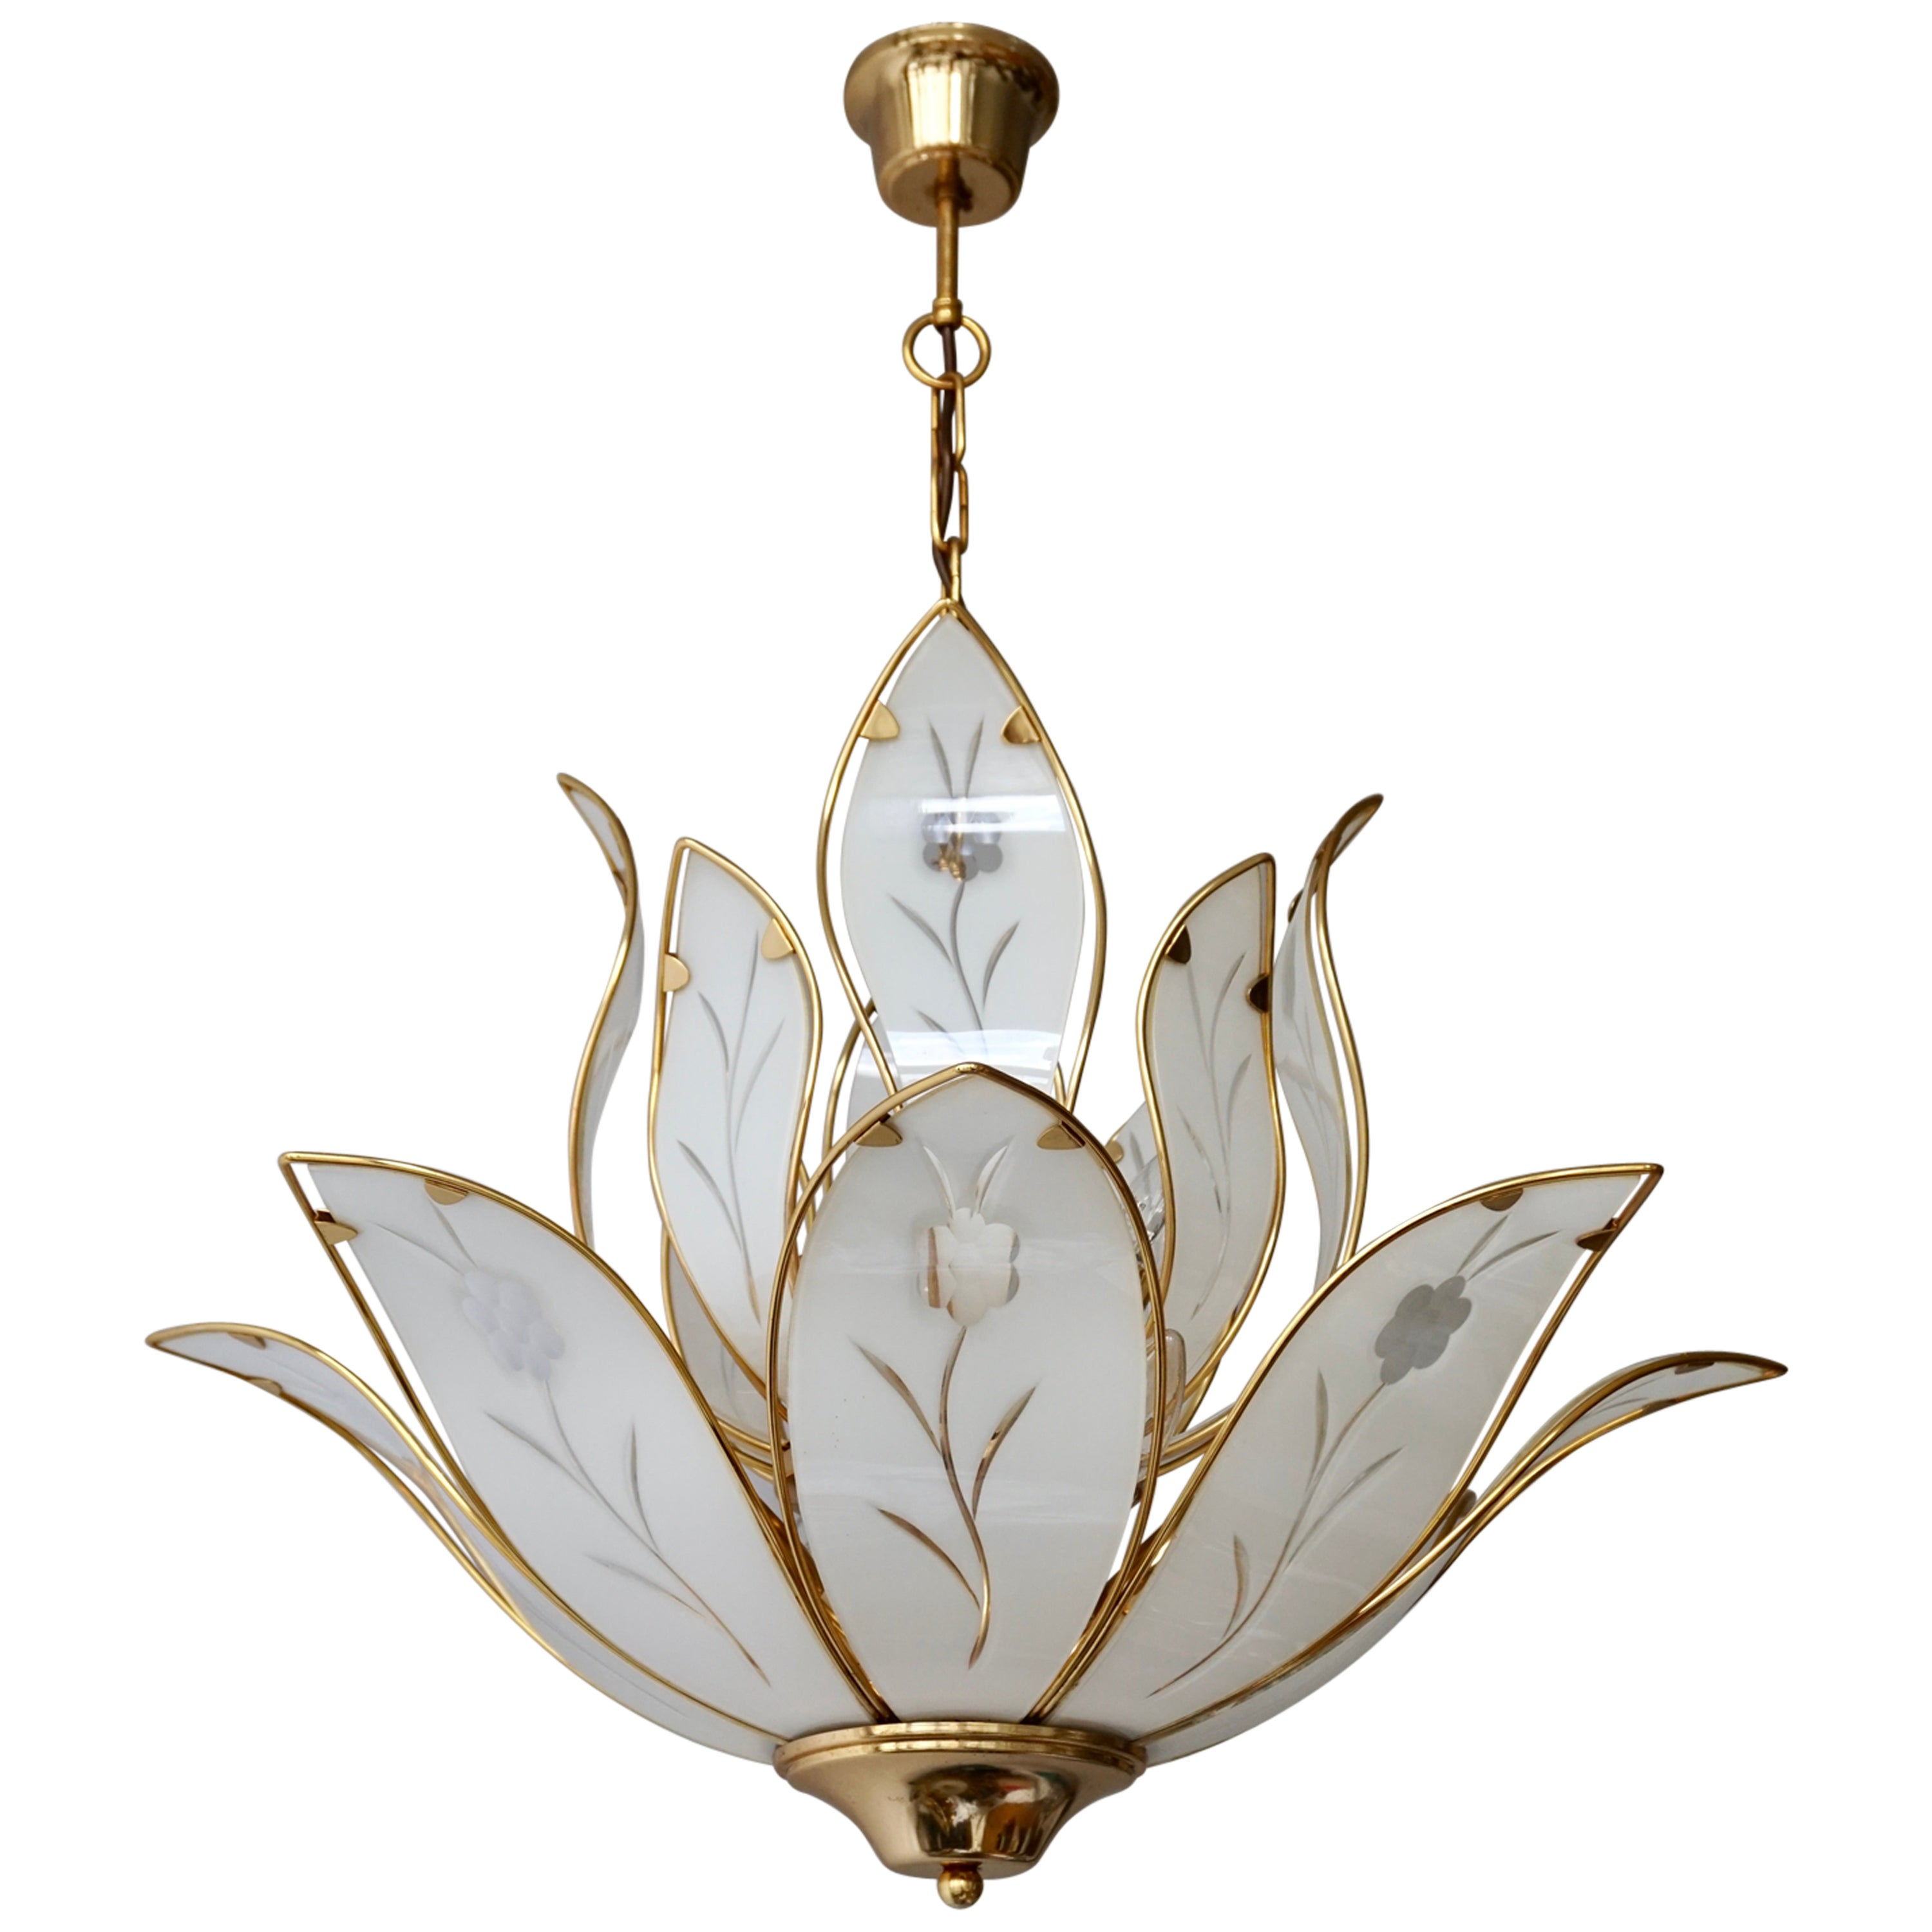 Lotus Chandelier in Brass and White Murano Glass